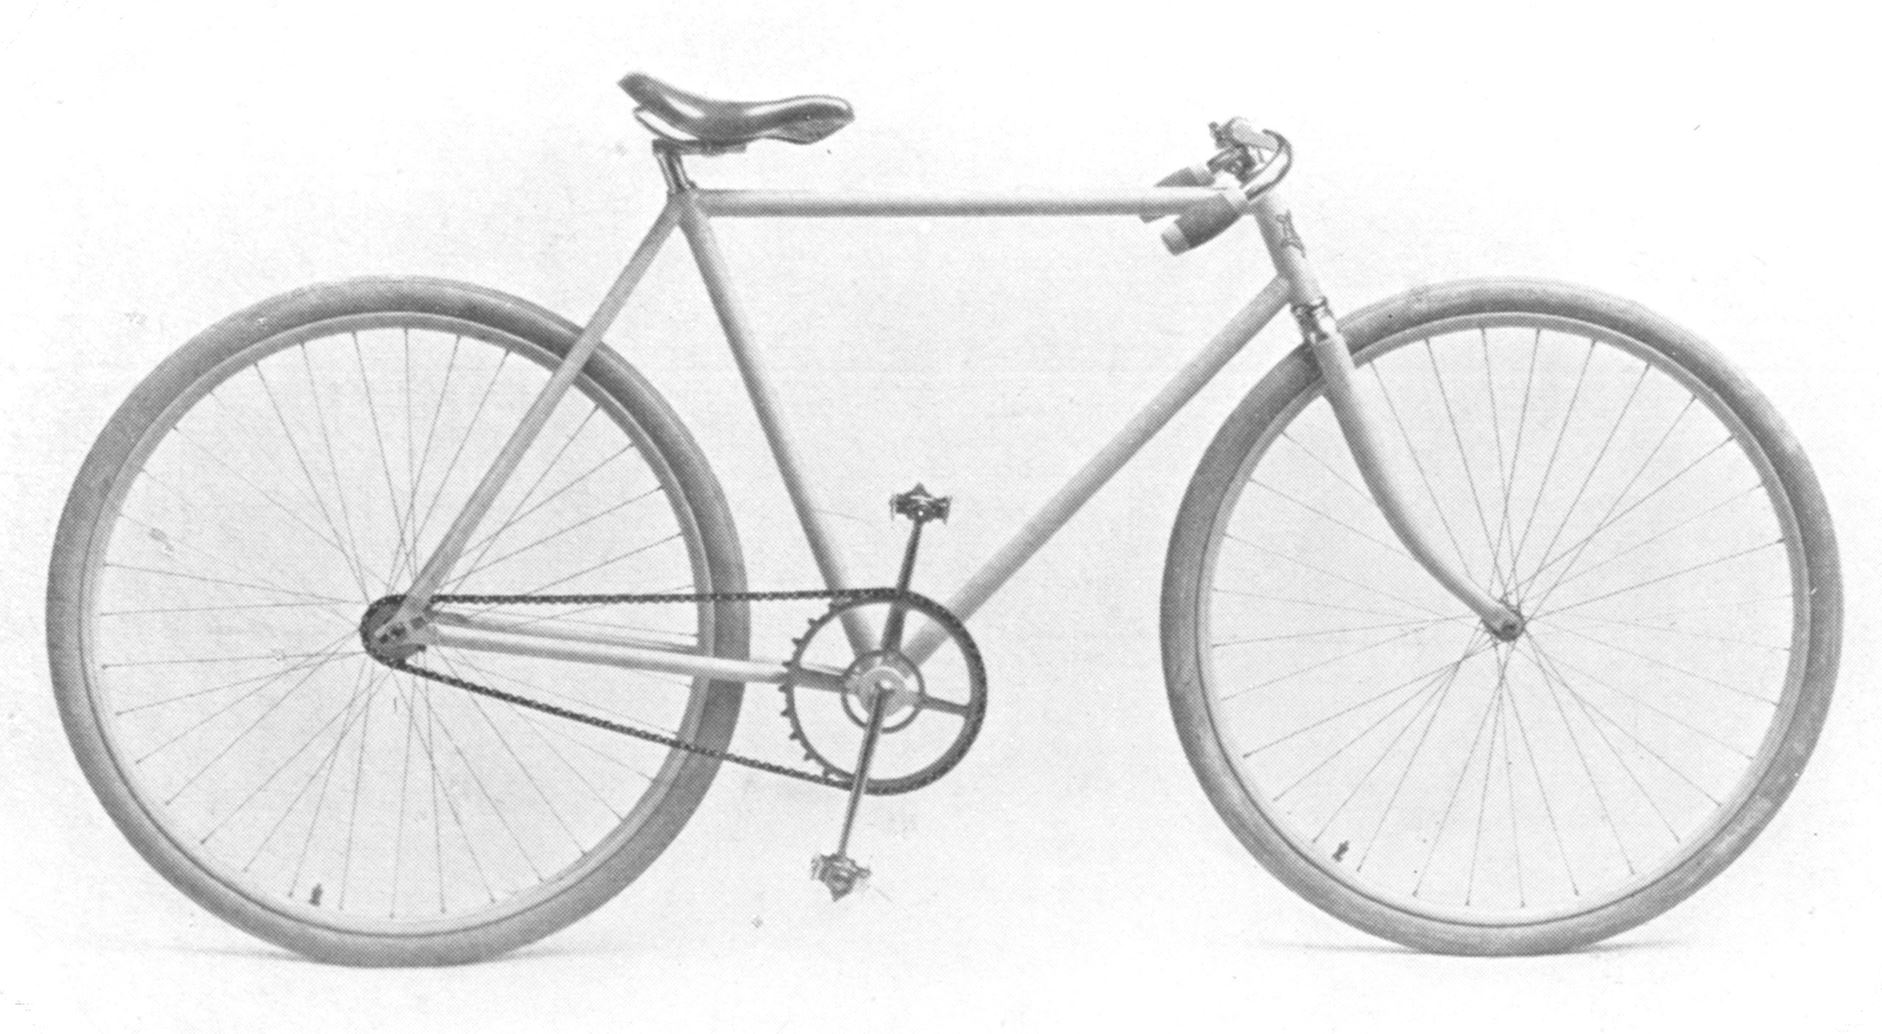 1899 Tribune Model 40 - Catalog Image.JPG